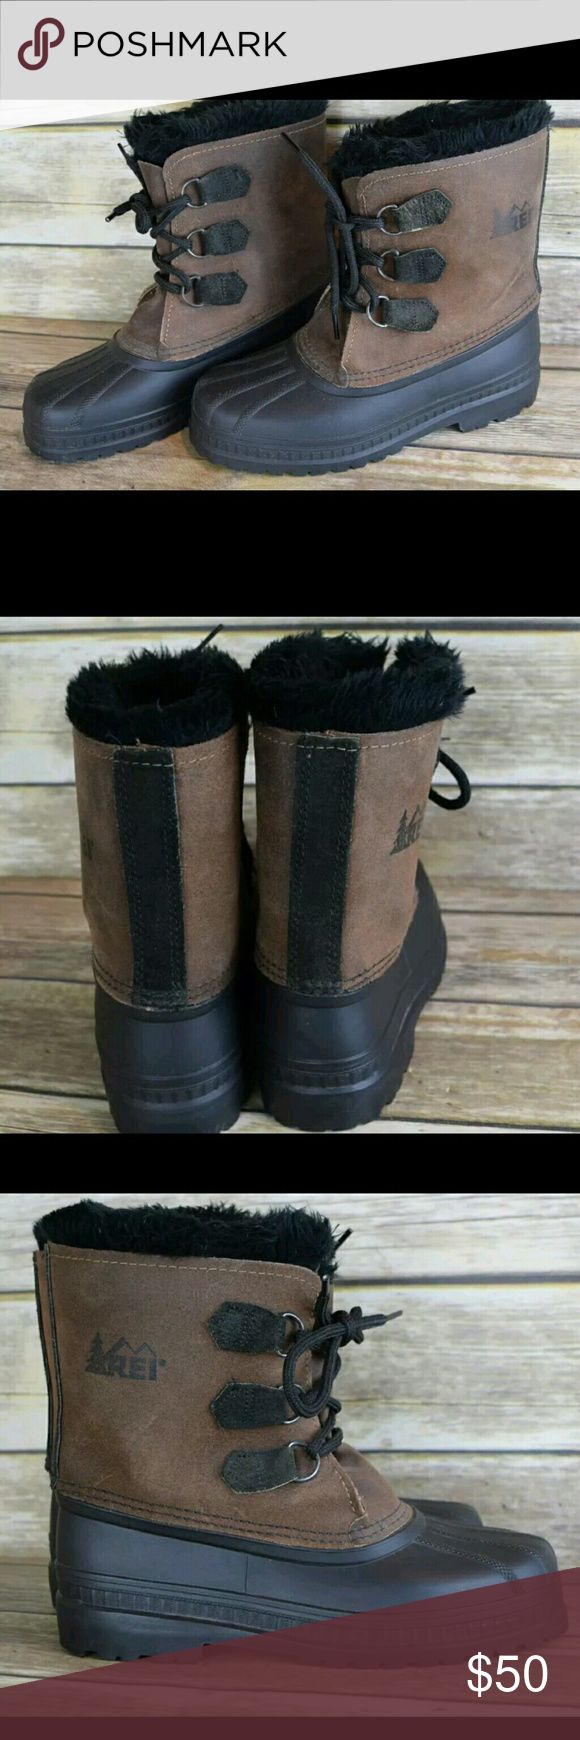 Sorel winter duck boots Womens winter REI sorel duck boots. Fur lined. Soze 6. Minimal wear noted, but no flaws. No trades please. Sorel Shoes Winter & Rain Boots